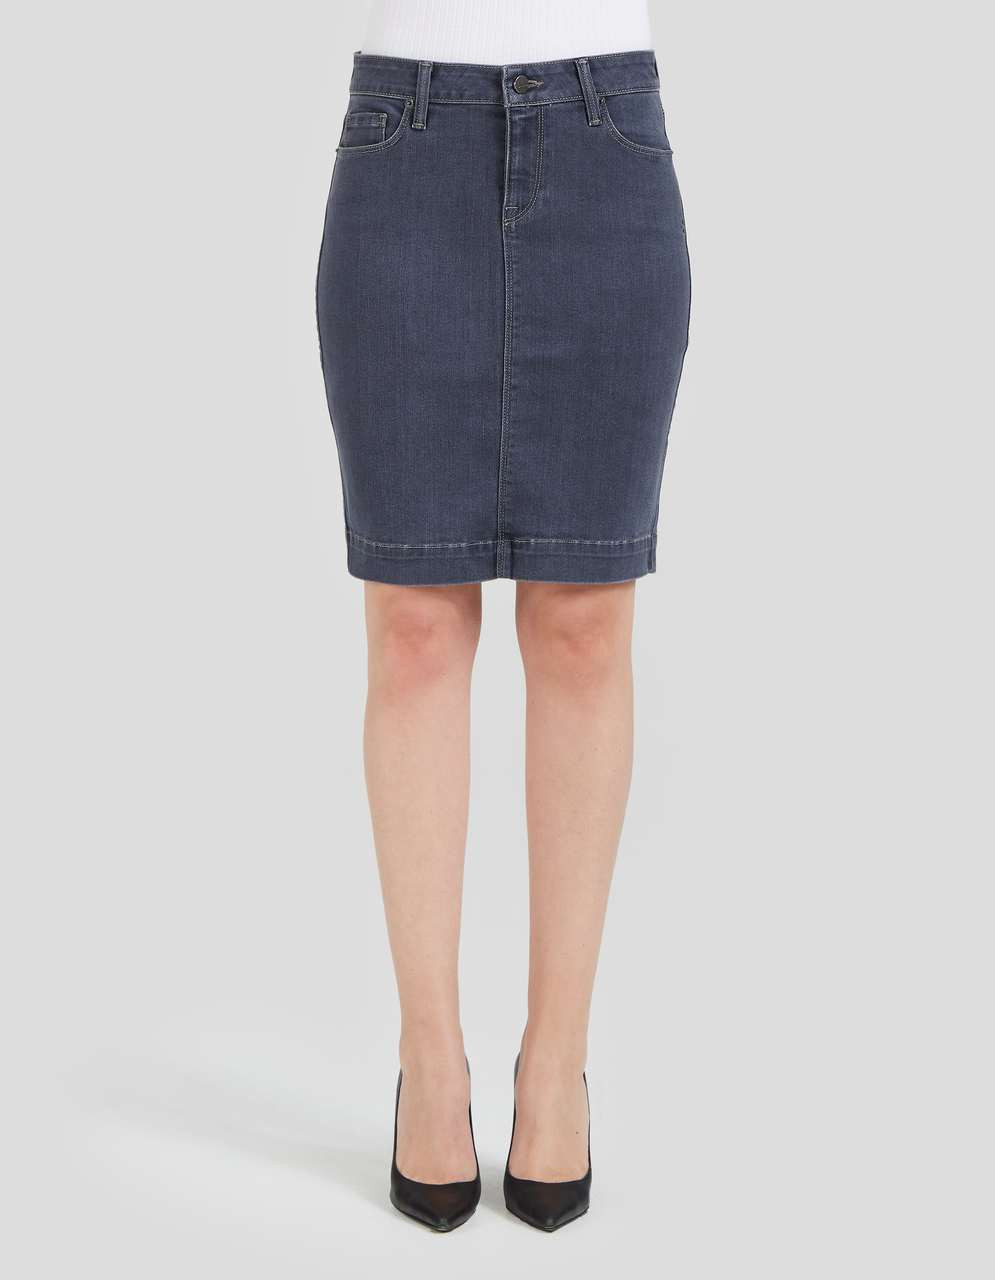 MID WAIST PENCIL SKIRT - Gordon in Denver